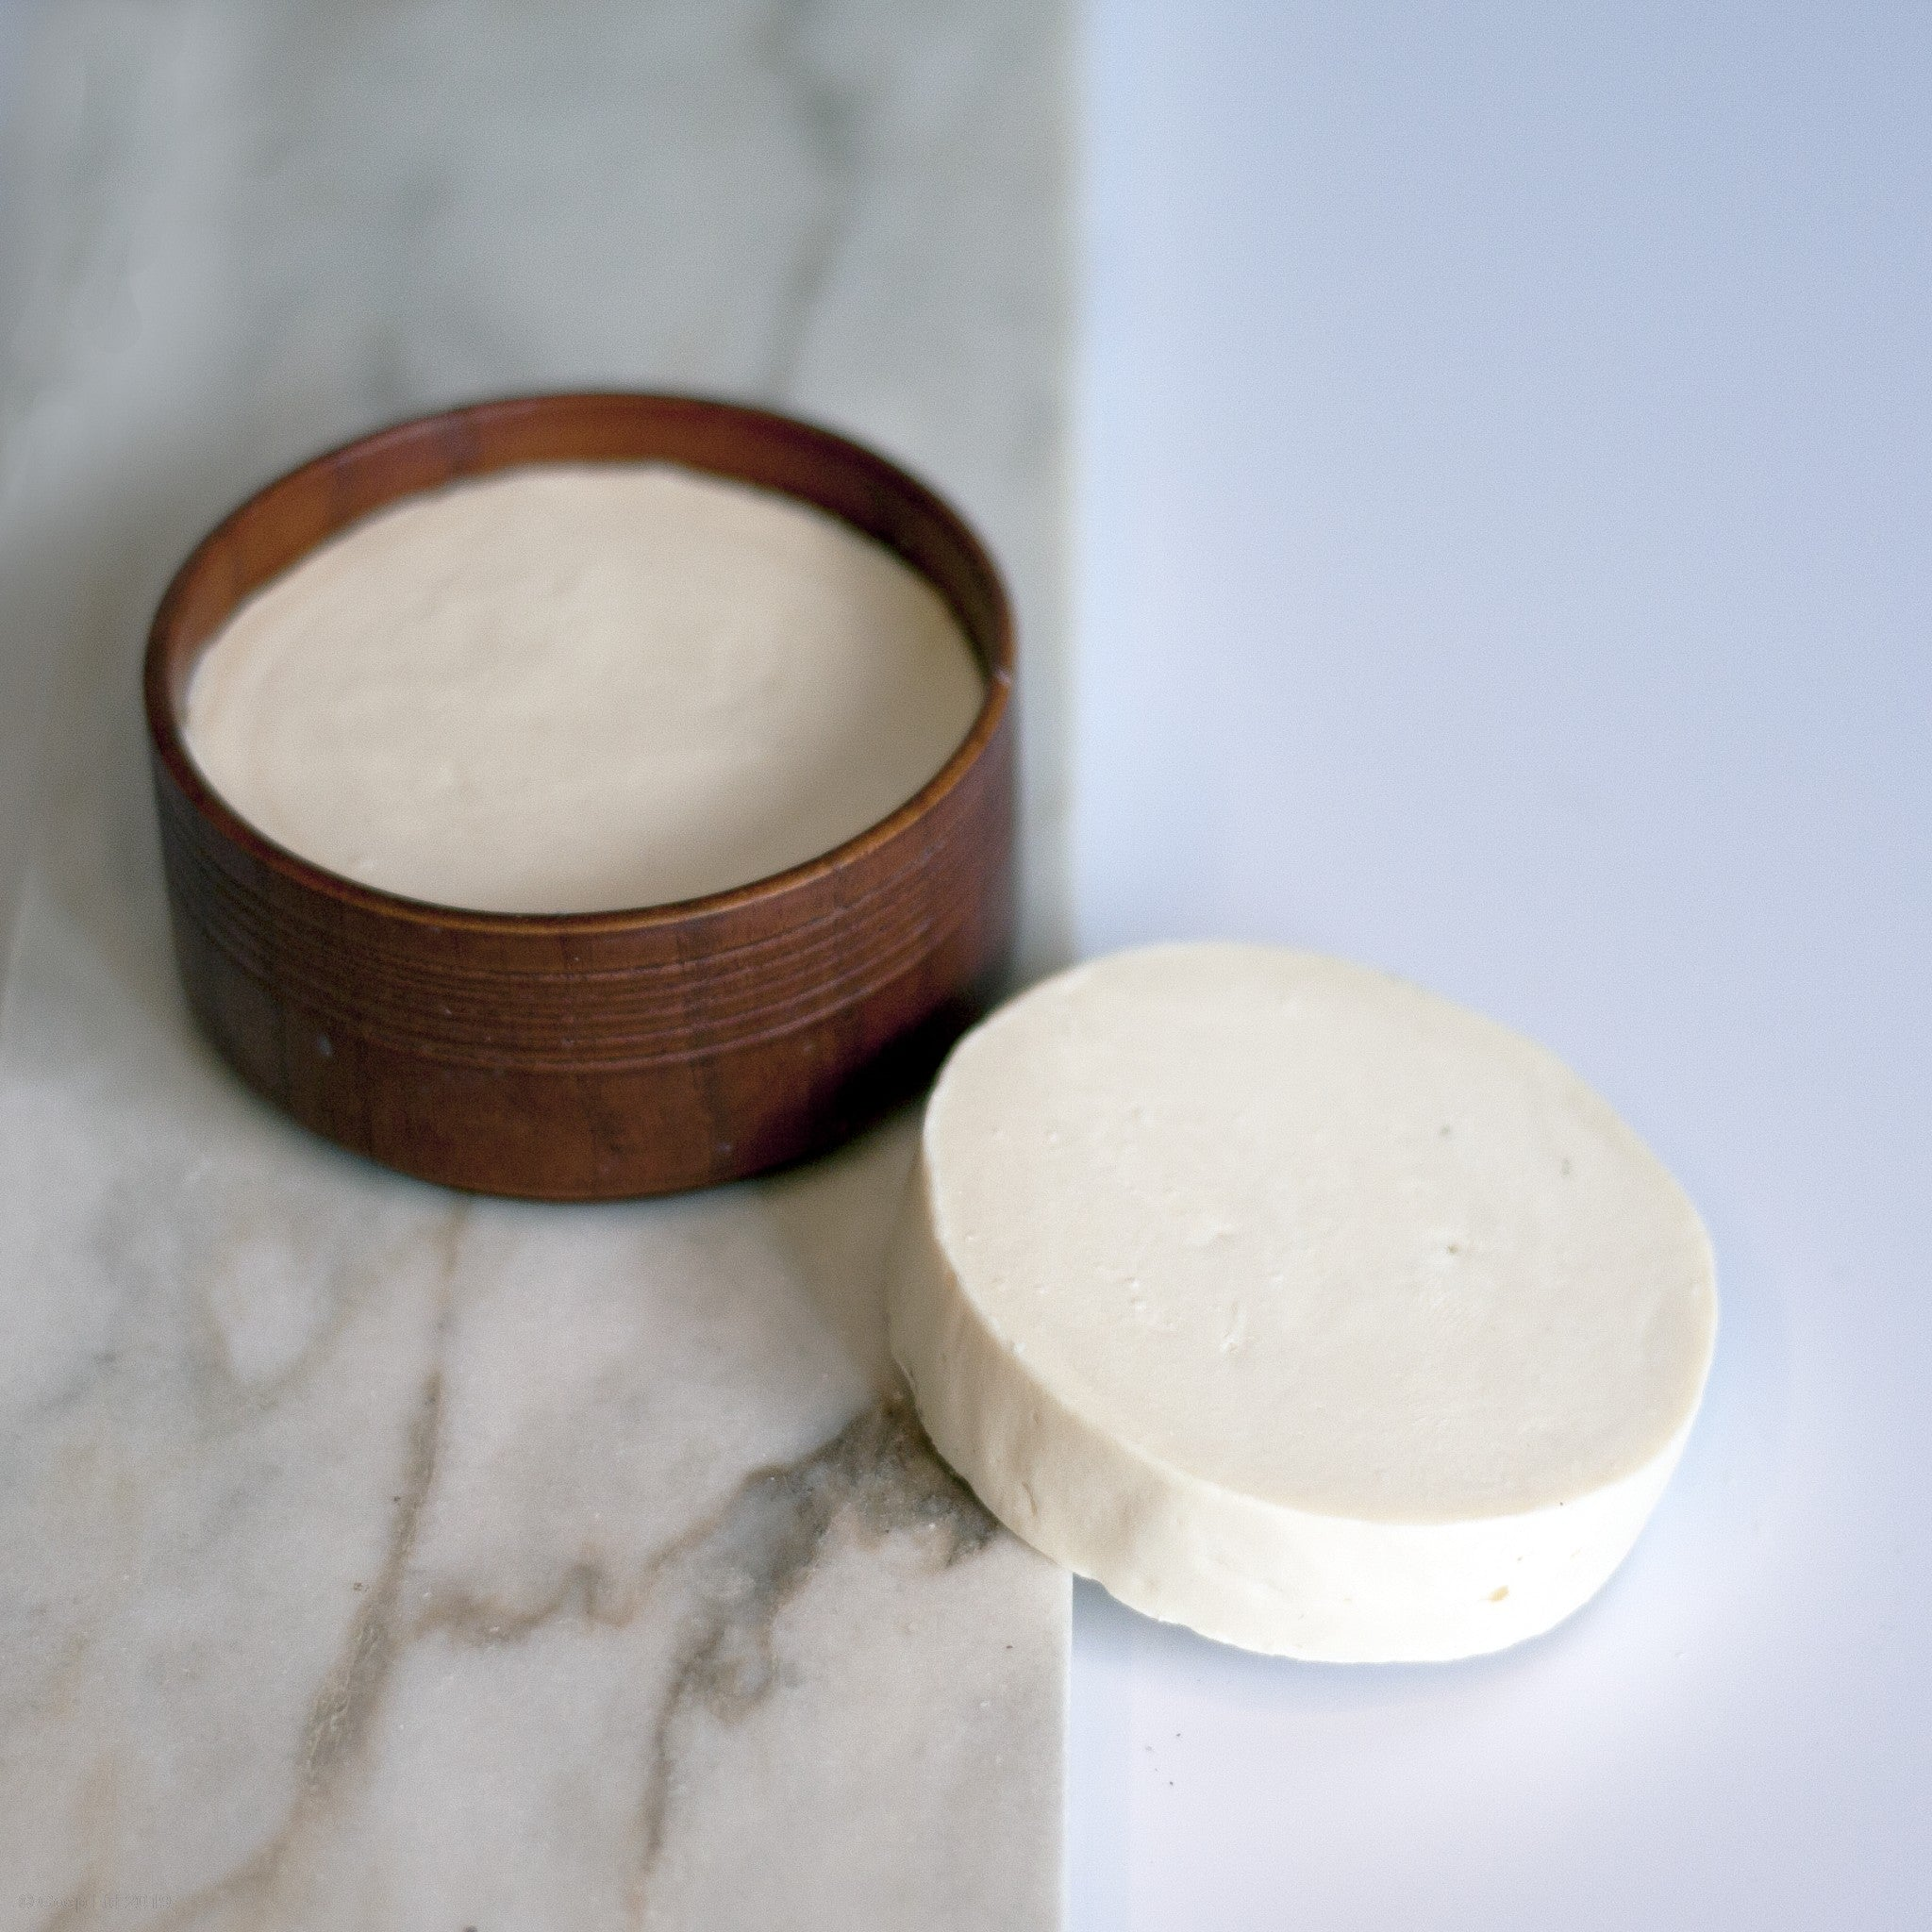 Goap Marble shaving soap